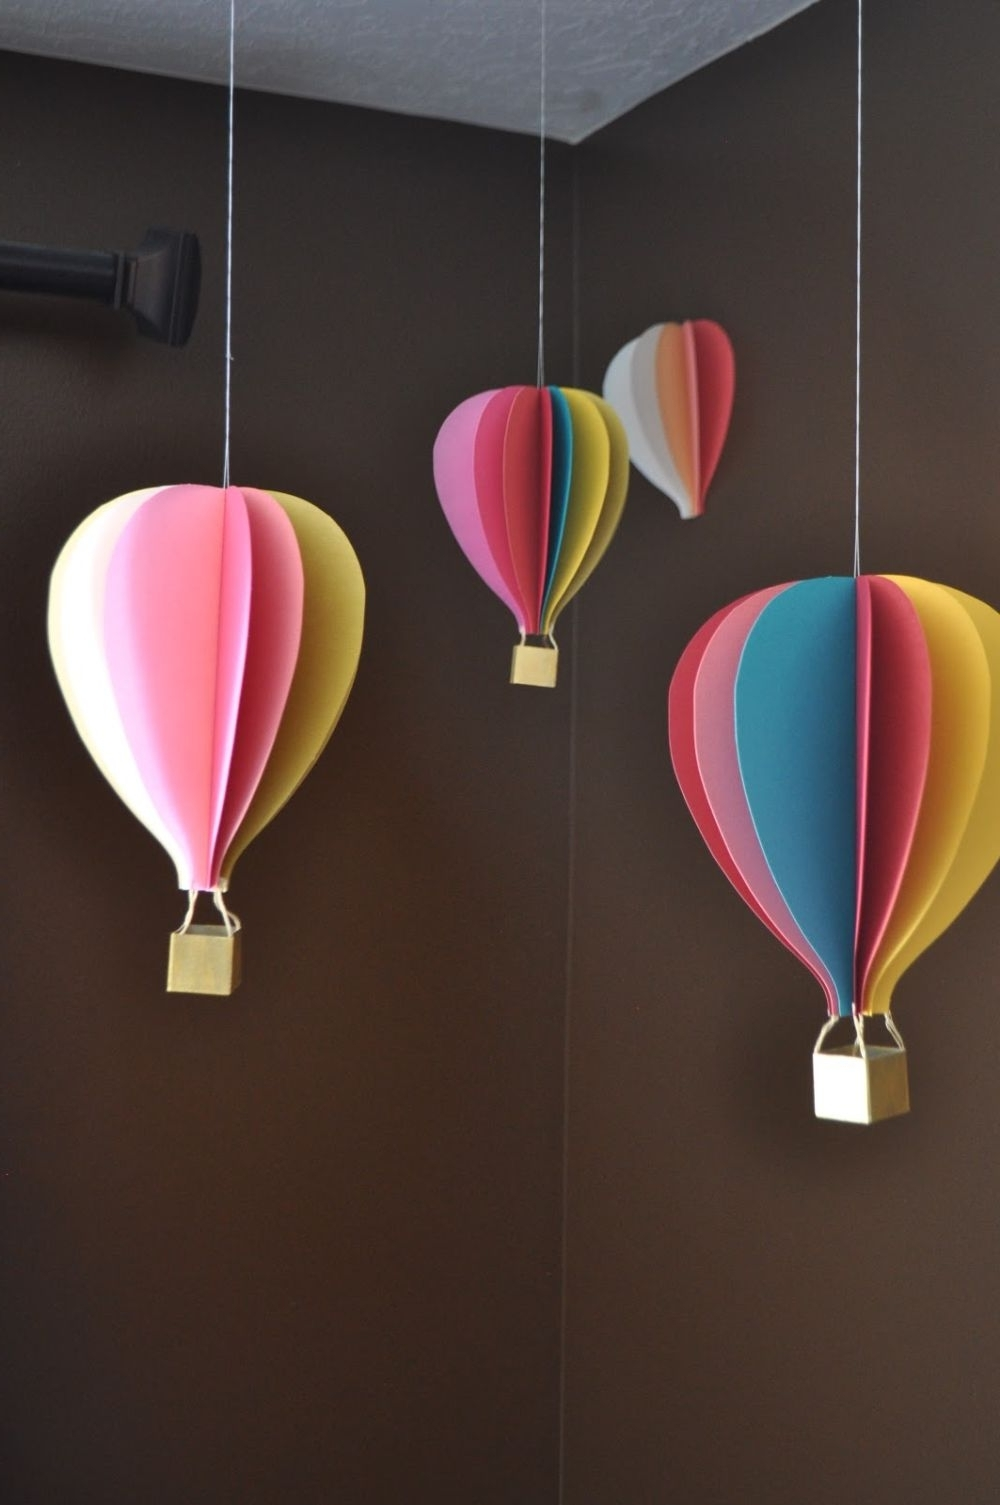 Newest Decorative Balls For Centerpieces, Hot Air Balloon Mobile Hot Air Inside Air Balloon 3d Wall Art (View 7 of 15)